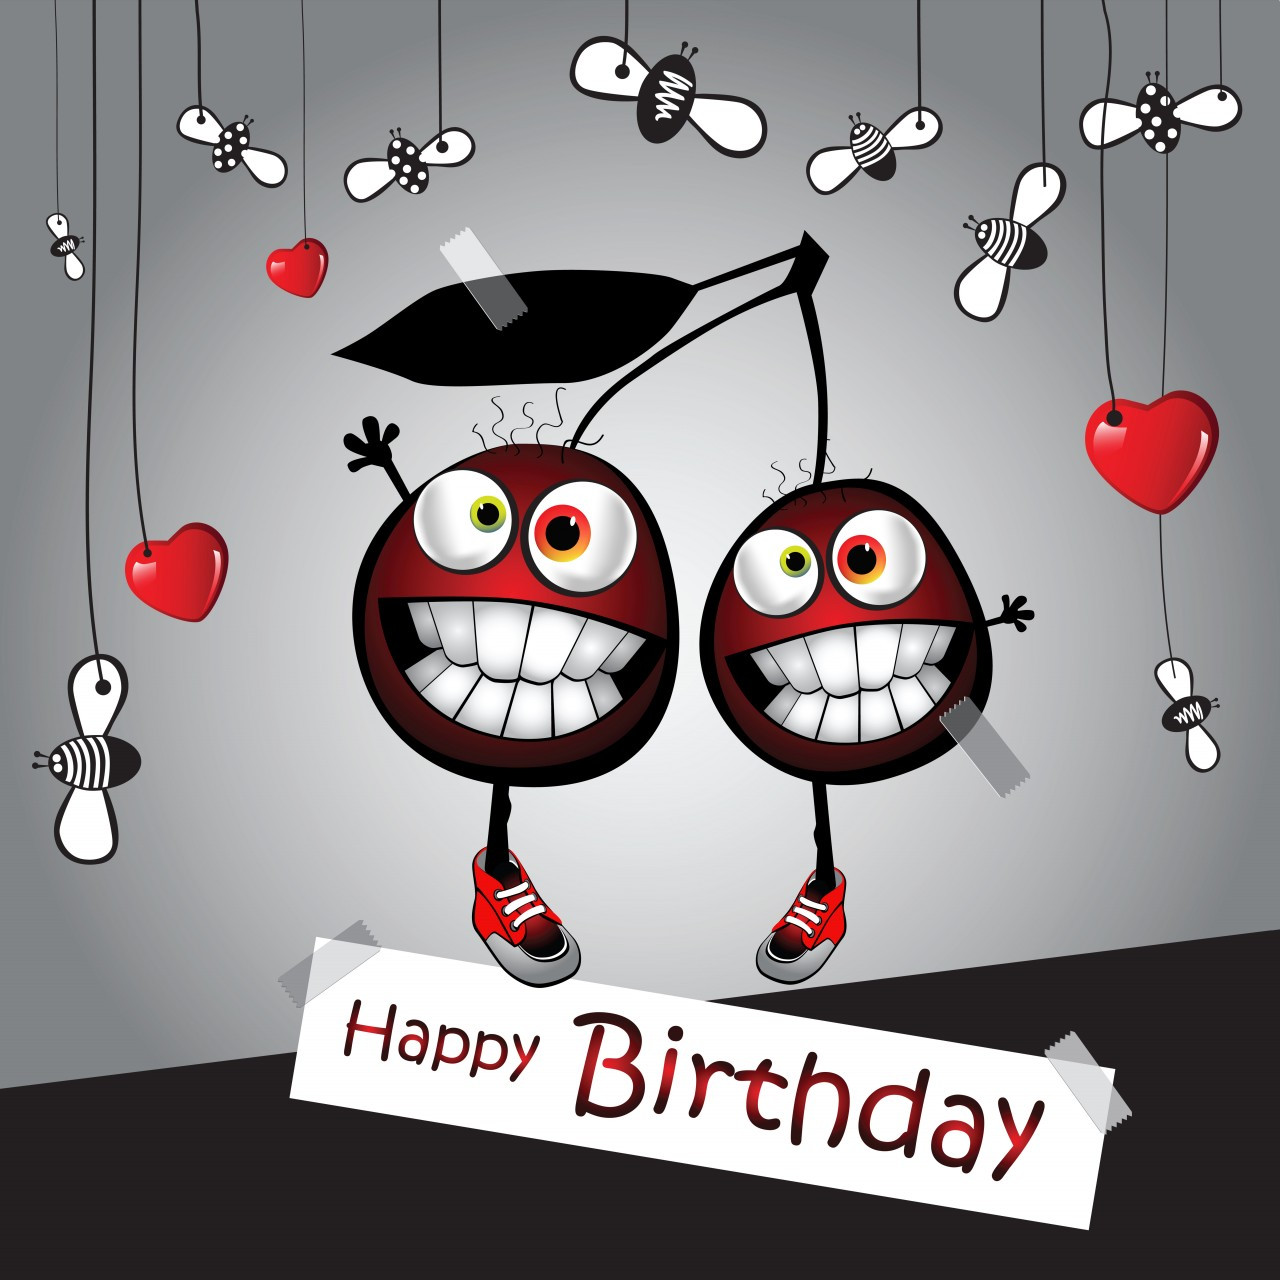 Happy Birthday Image Funny  Free Cute Birthday Cartoons Download Free Clip Art Free